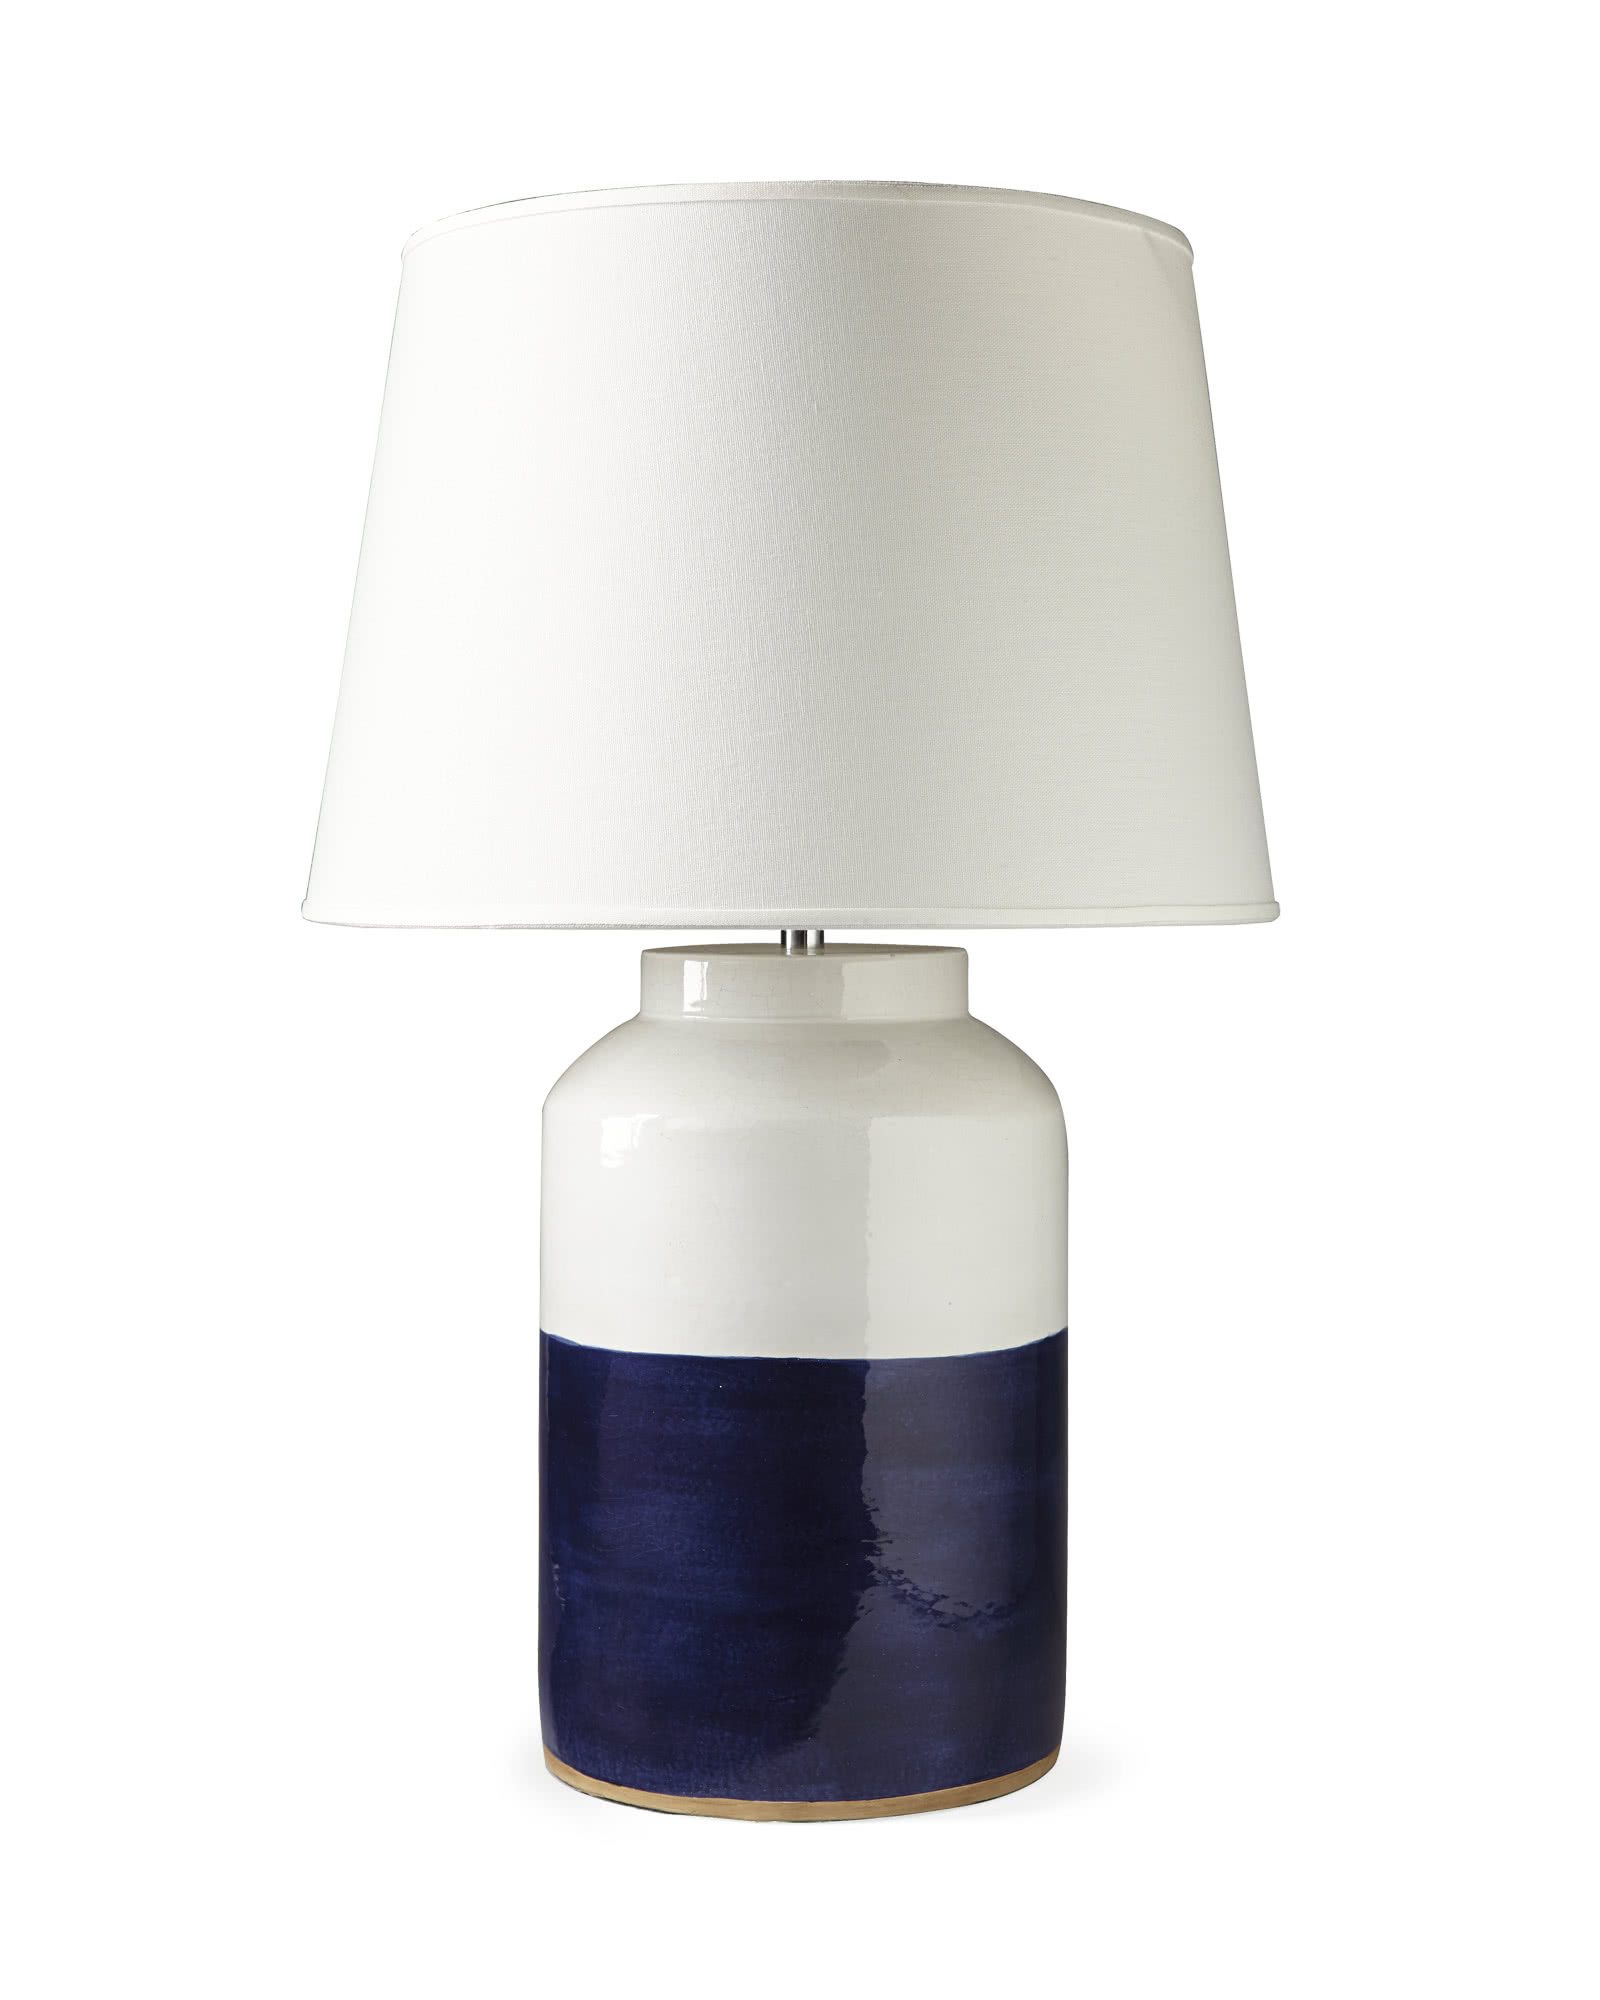 Dunmore Table Lamp,